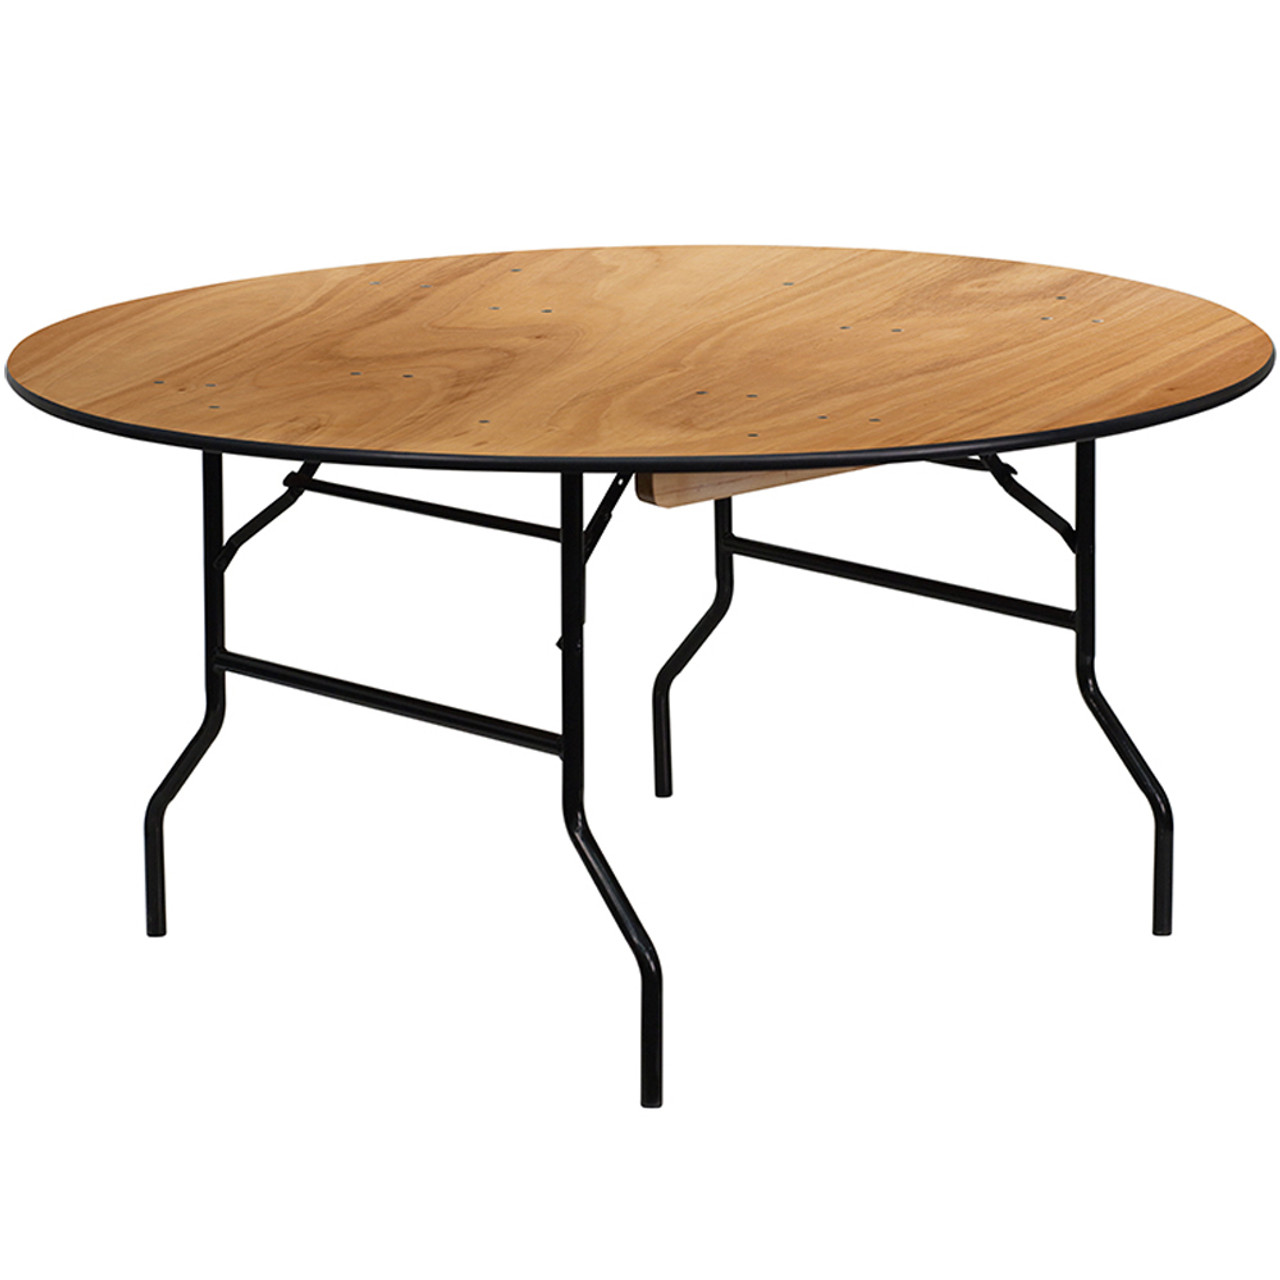 - 5-pack: 60-inch (5 Ft.) Round Wood Folding Banquet Tables [5-YT